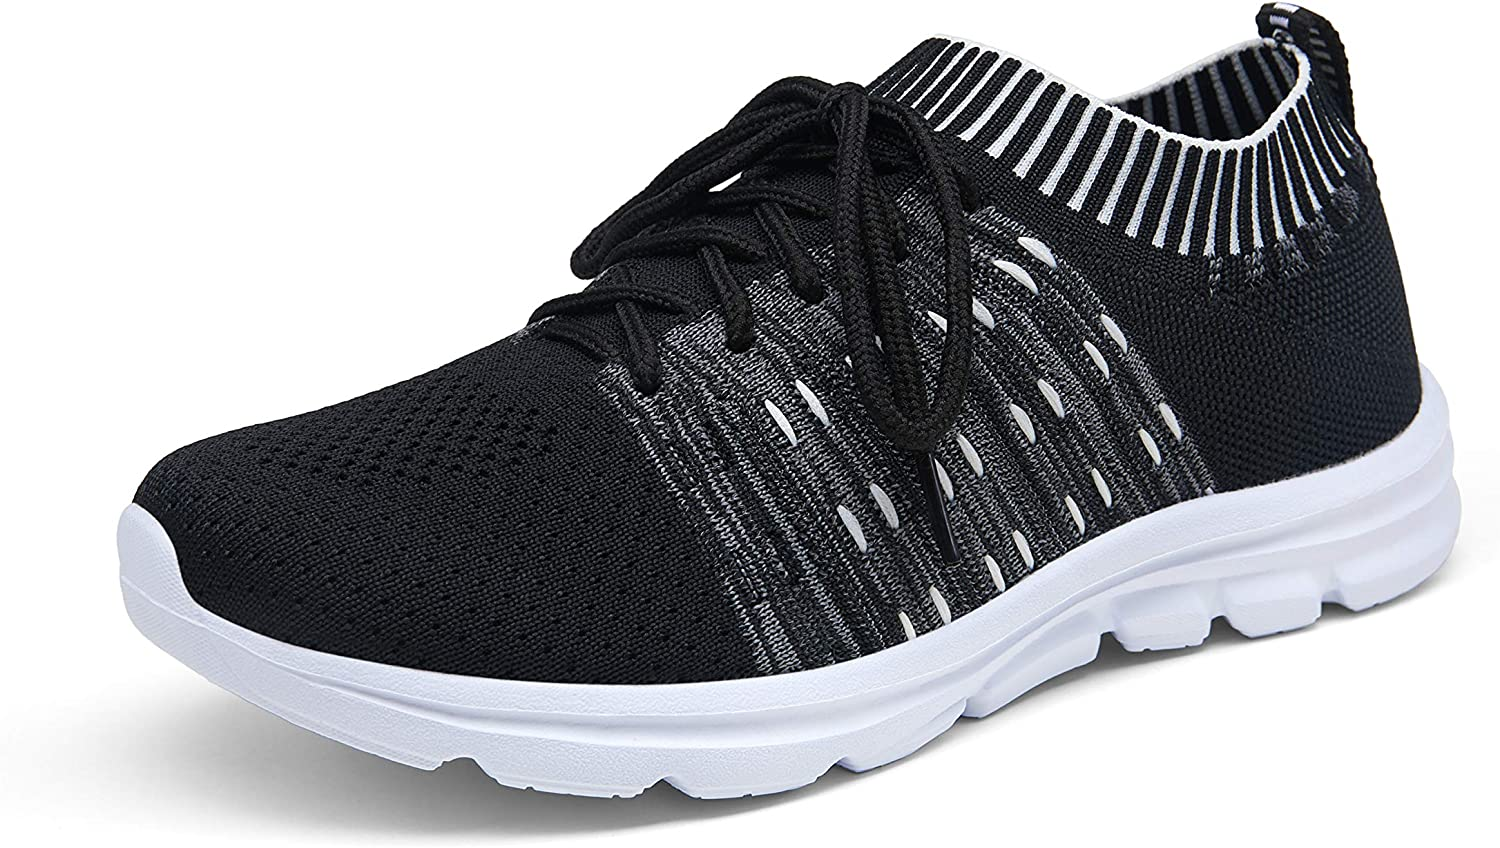 Details about  /Womens Sport Running Shoes Casual Sneakers Walking Gym Athletic Trainers shoes